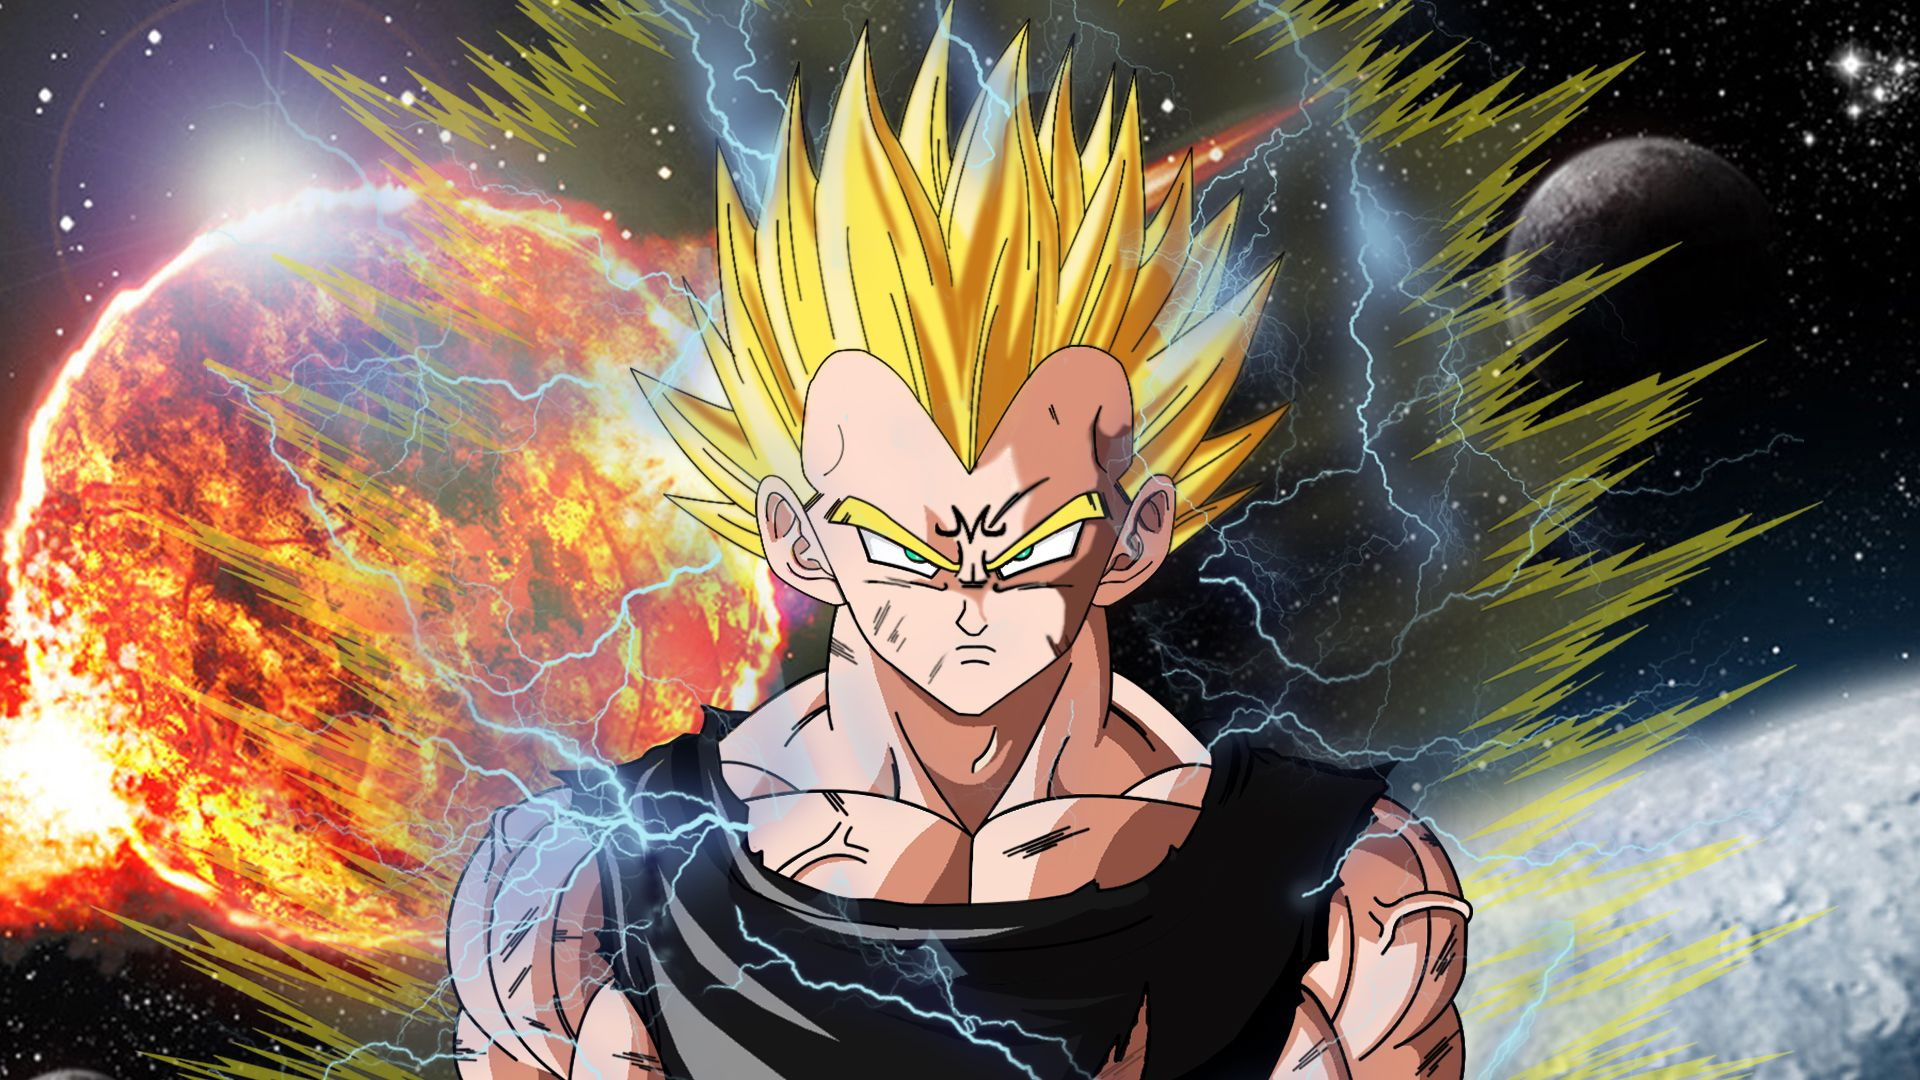 Majin Vegeta Wallpaper 4k